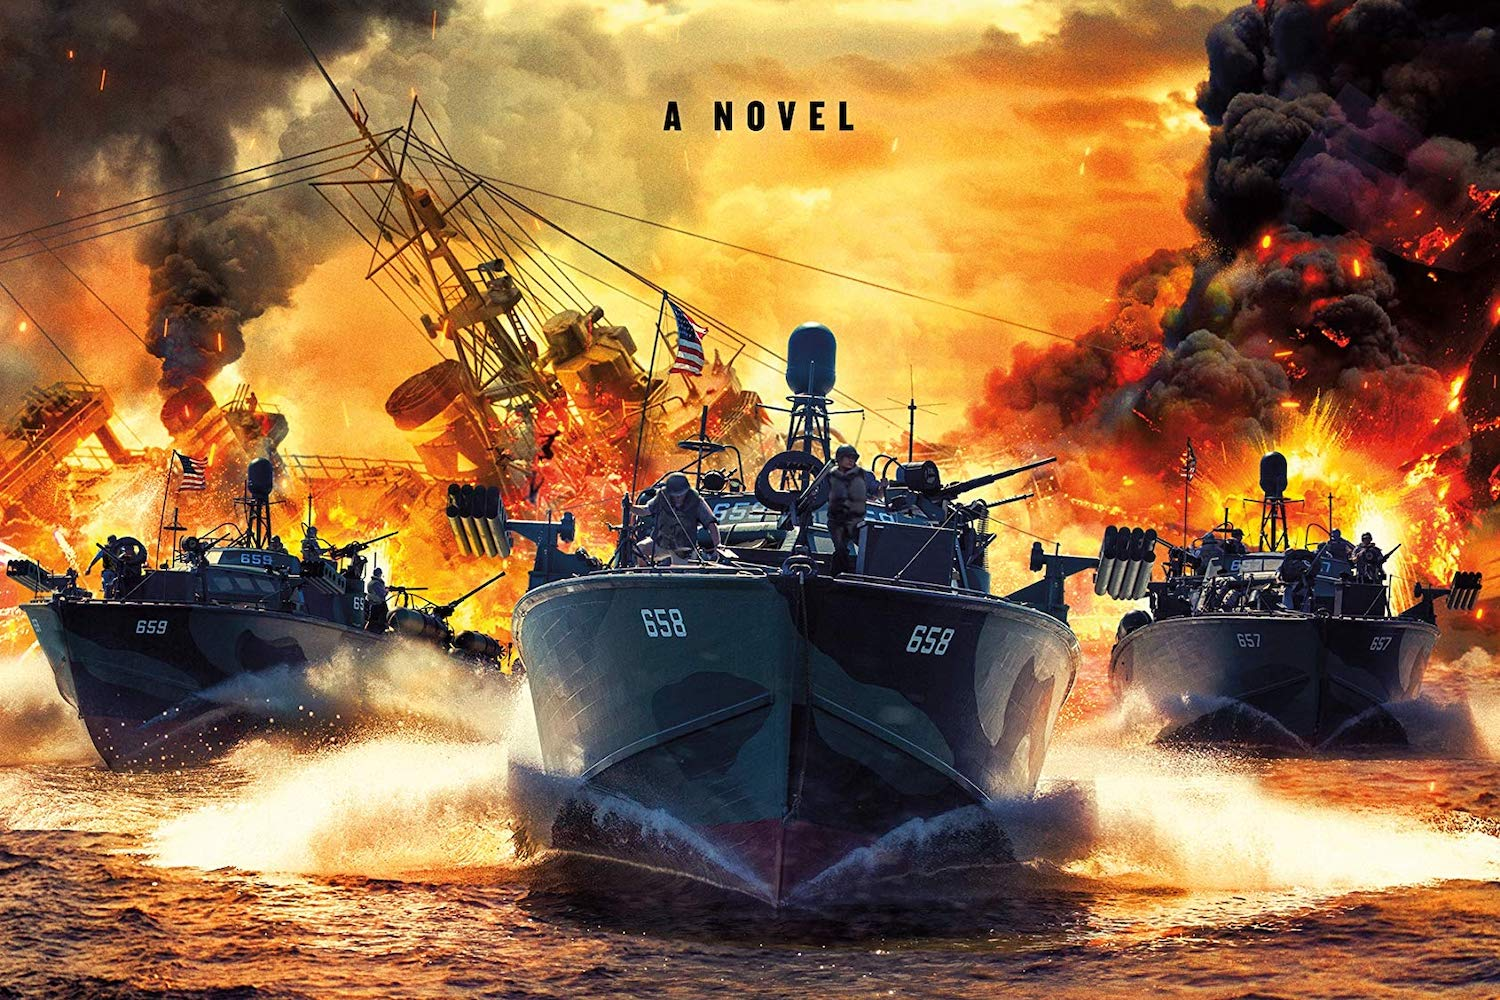 WWII Naval Adventure 'Hooligans' Follows Exploits of PT Boats in Pacific